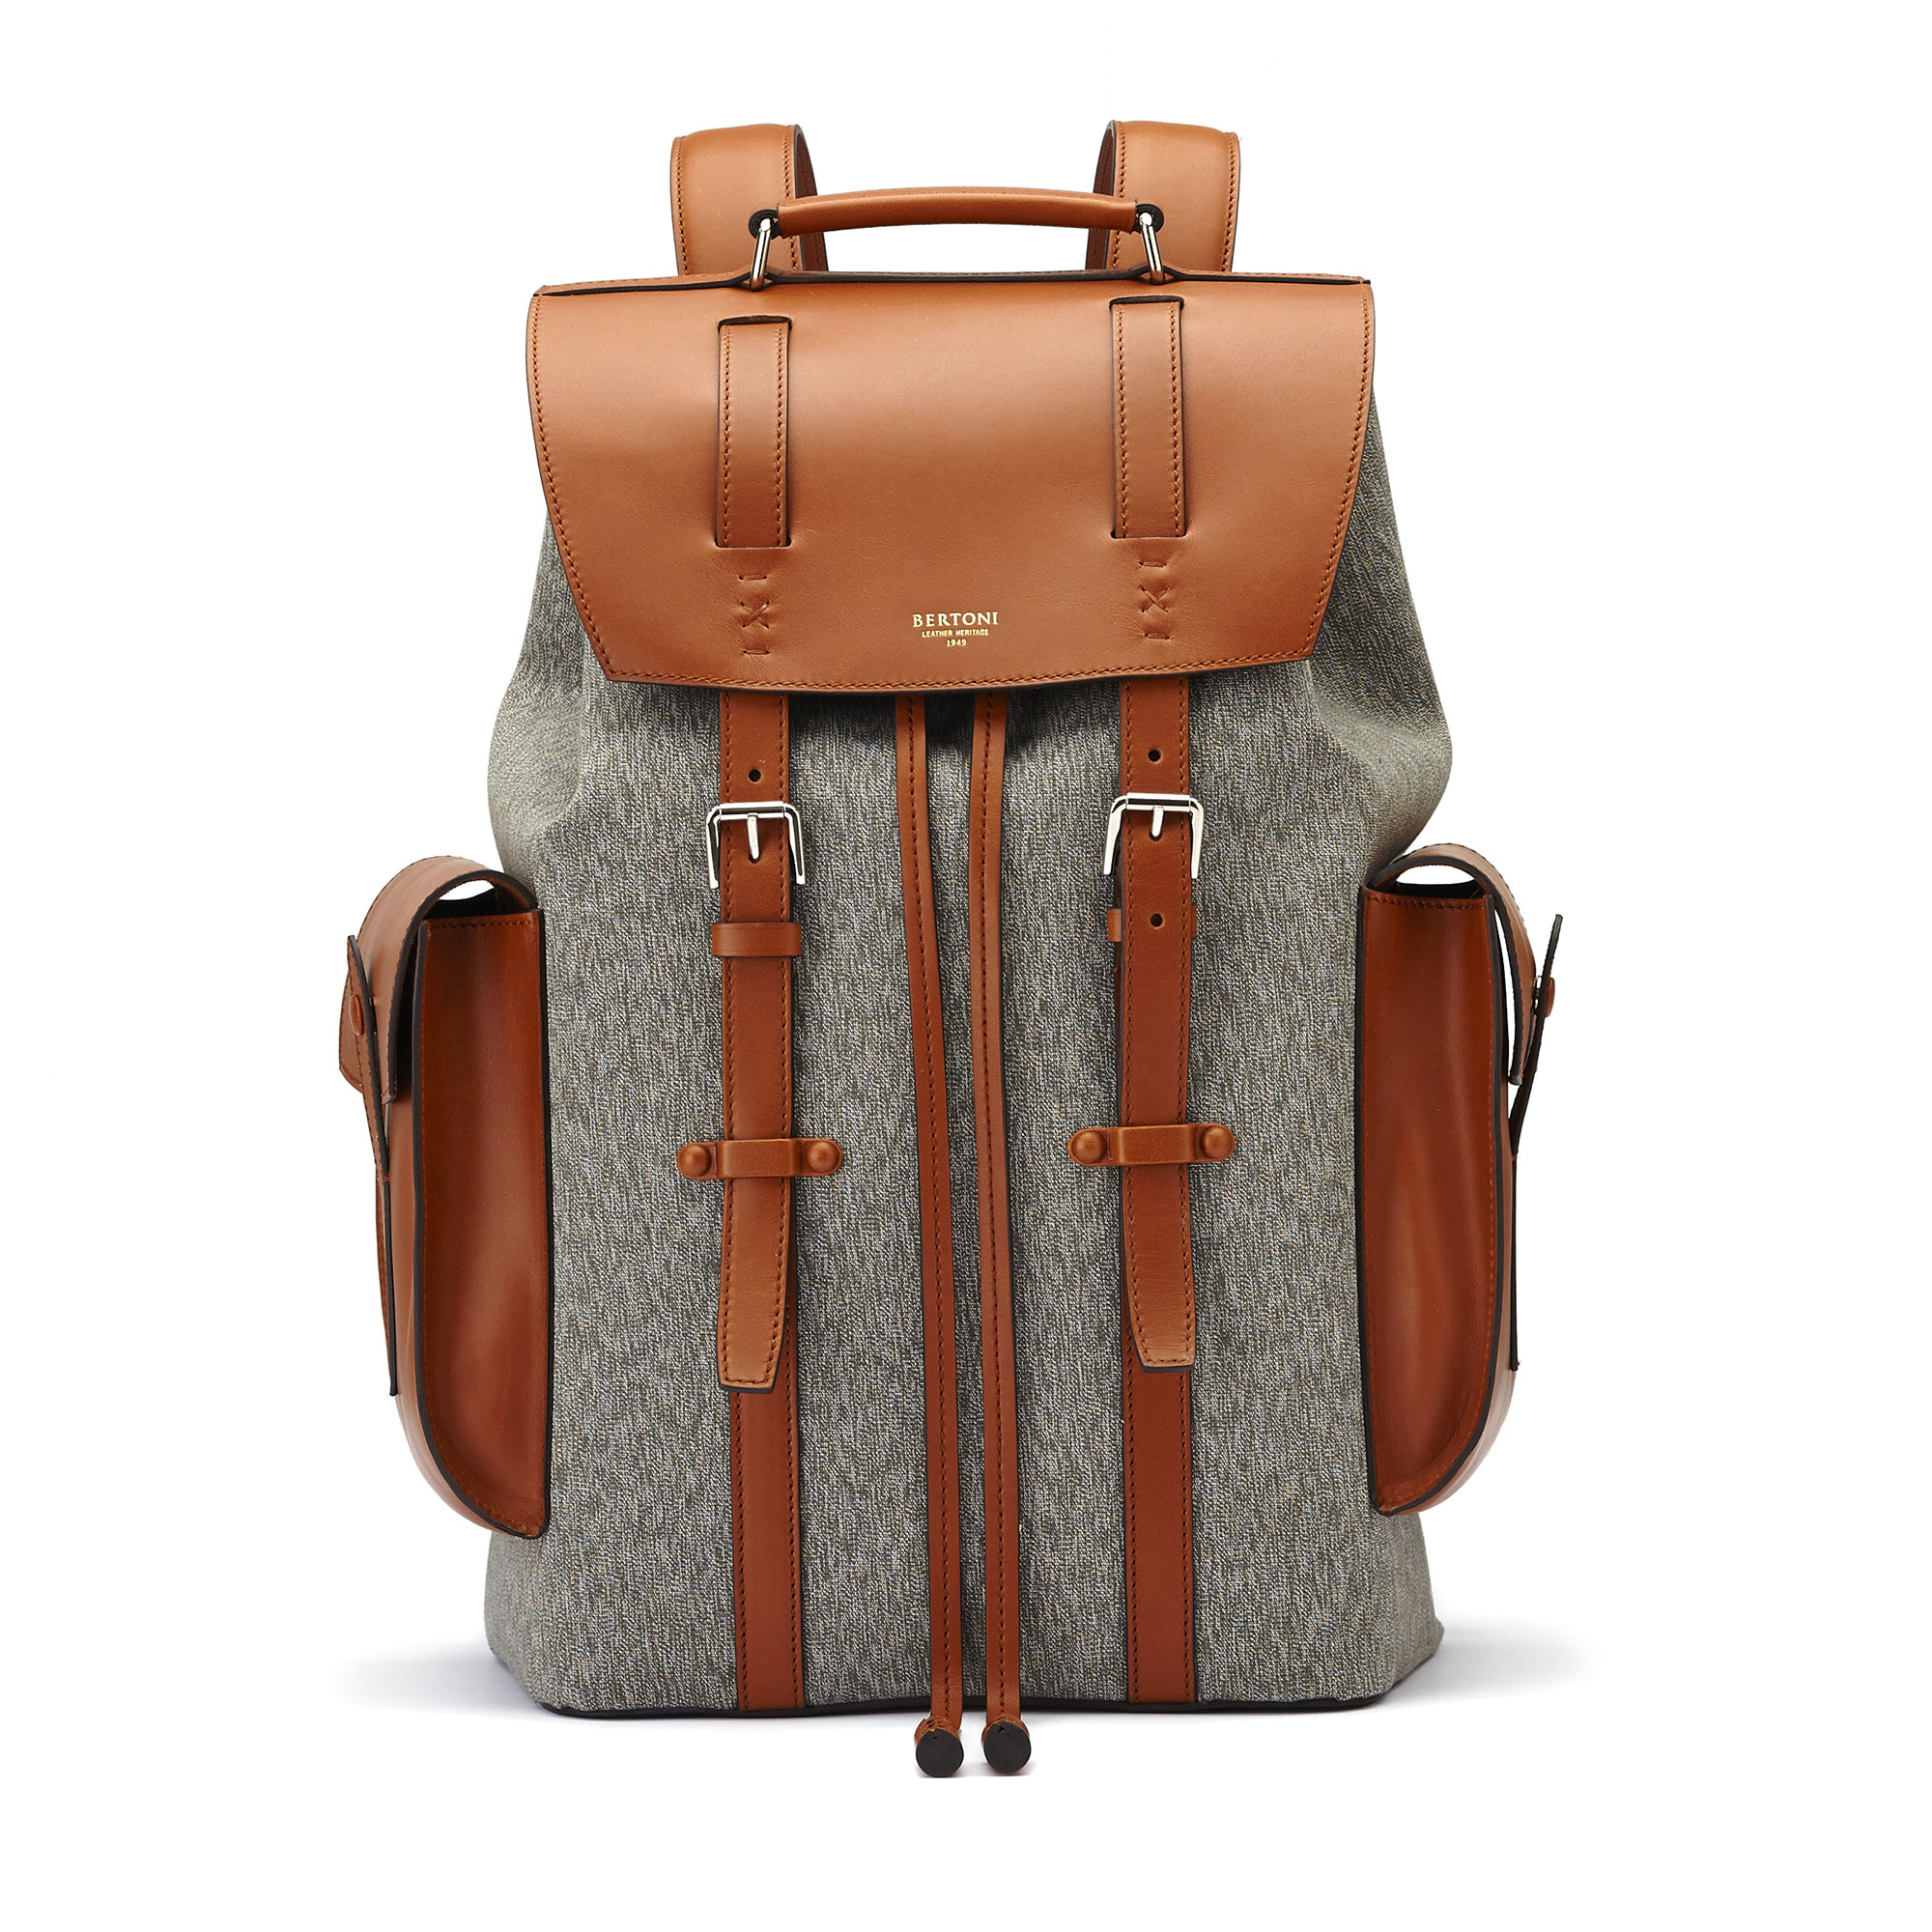 The ivory and olive french calf Traveller Backpack by Bertoni 1949 01